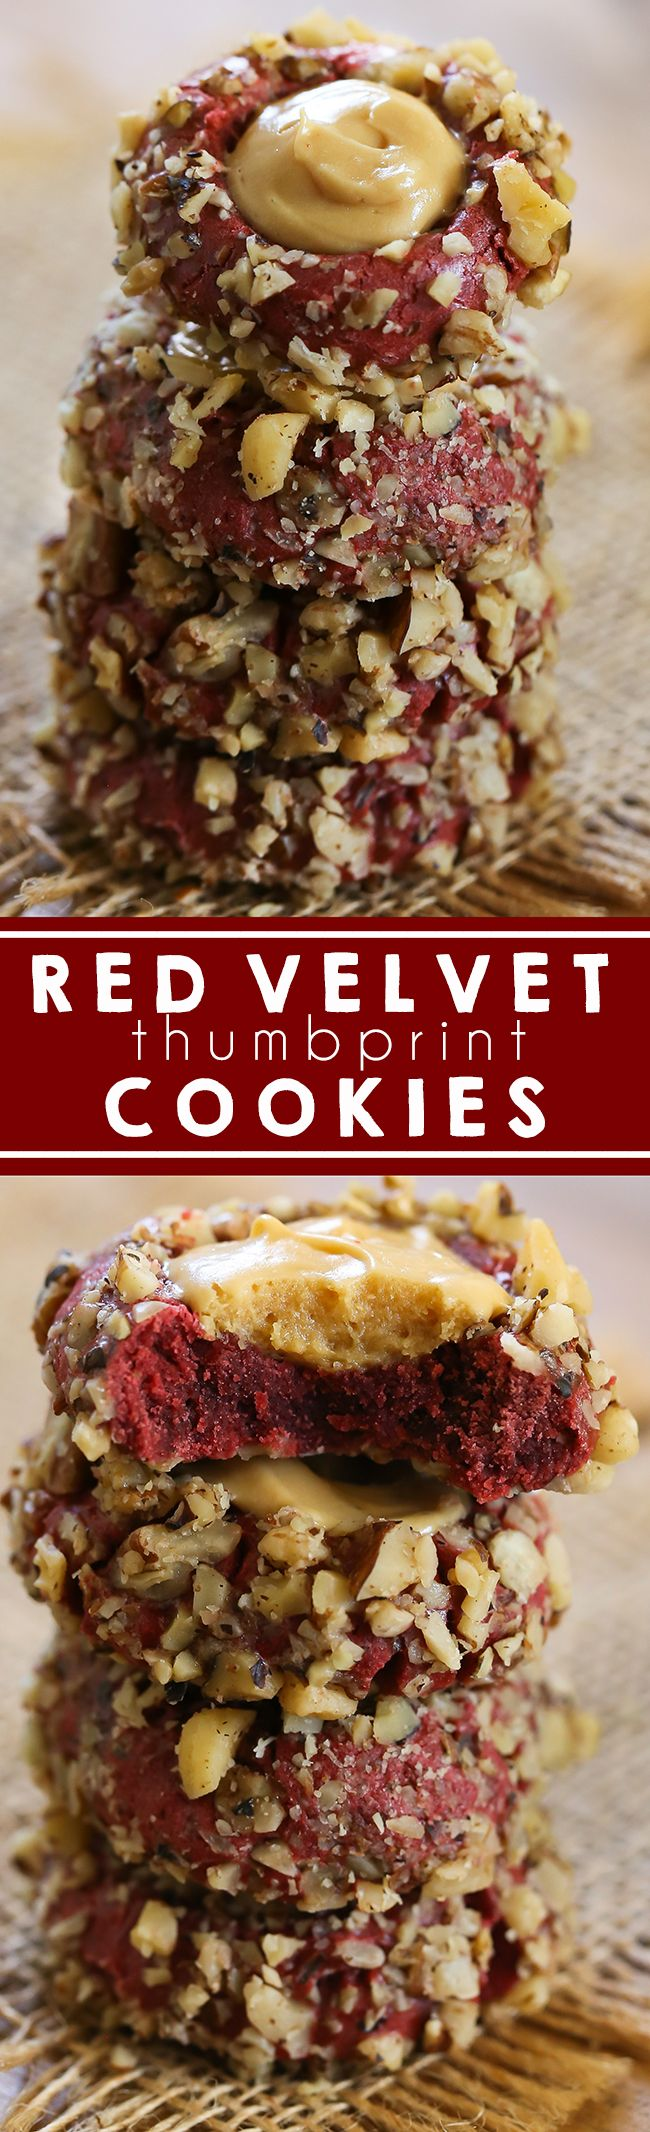 Red Velvet Thumbprint Cookies - The most amazing red velvet cookies with caramel cream cheese filling. #cookies #redvelvet #christmascookies